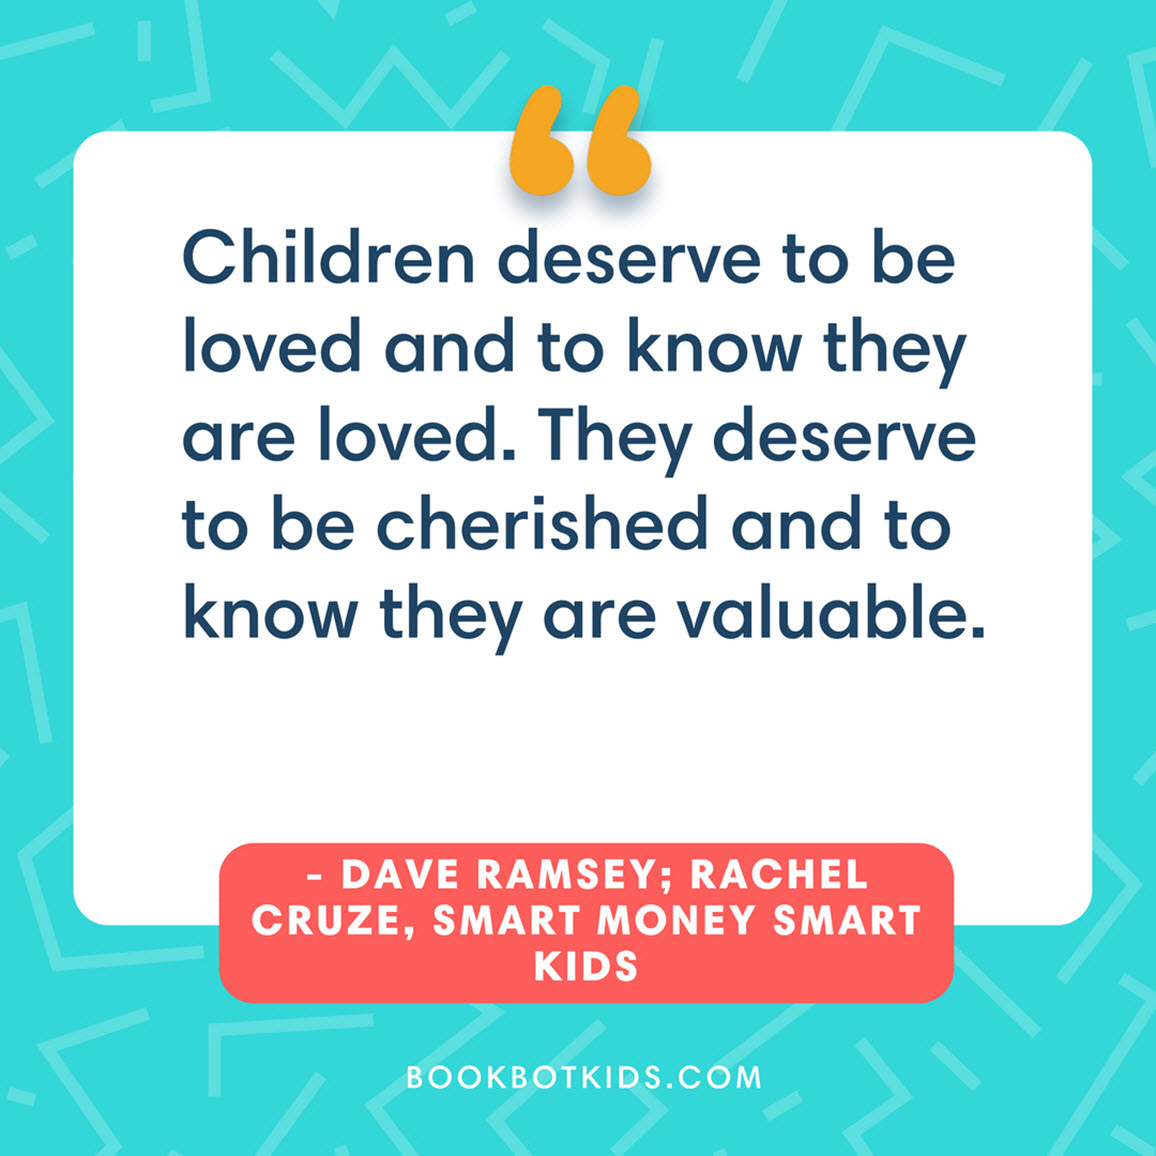 Children deserve to be loved and to know they are loved. They deserve to be cherished and to know they are valuable. – Dave Ramsey; Rachel Cruze, Smart Money Smart Kids